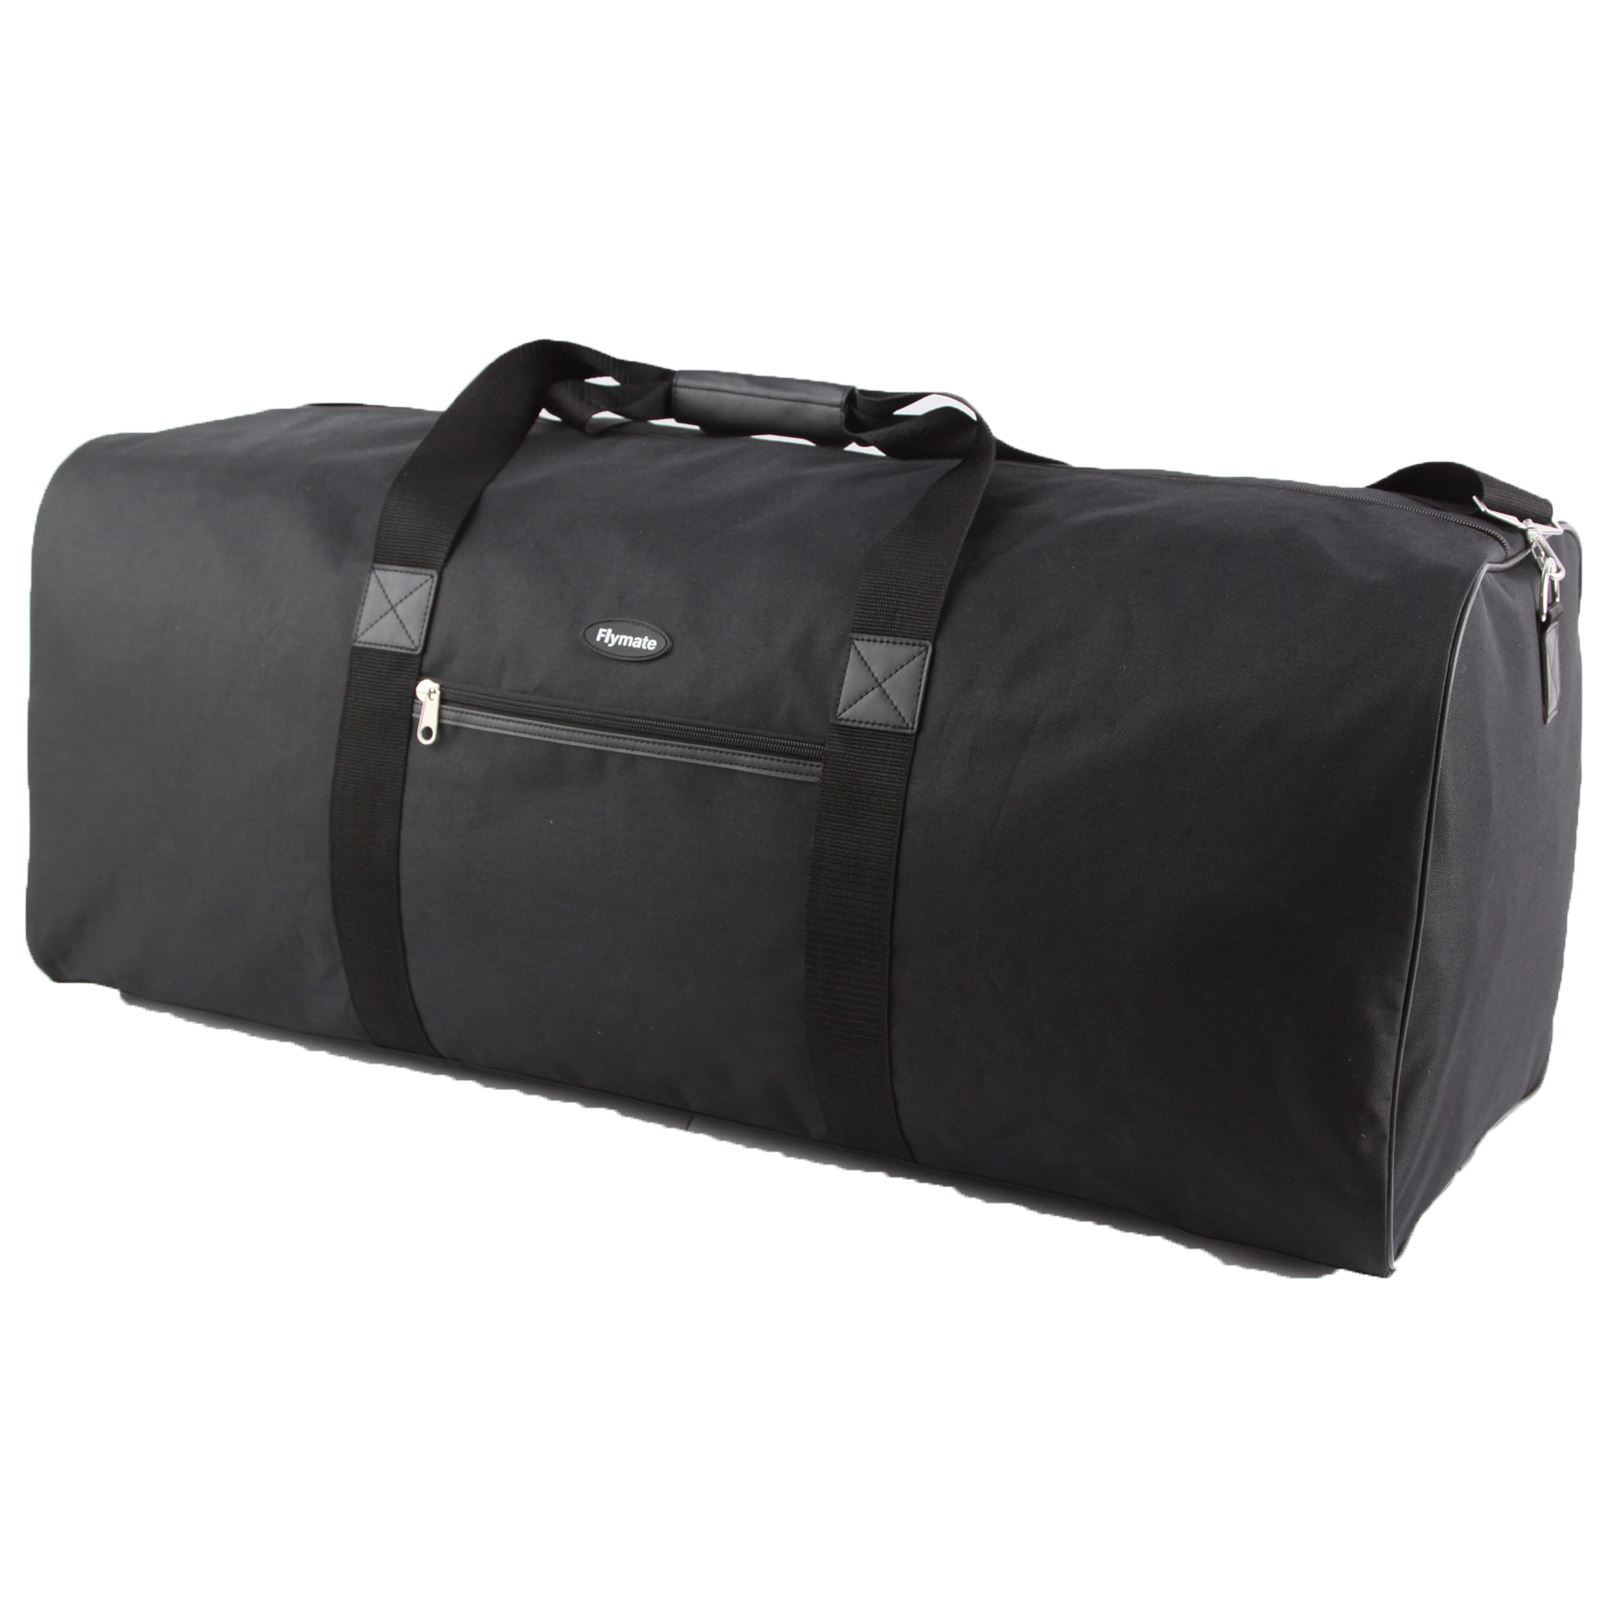 HEAVY-DUTY-STRONG-EXTRA-LARGE-36-034-40-034-44-034-48-034-HOLDALL-SUITCASE-CARGO-DUFFLE-BAG